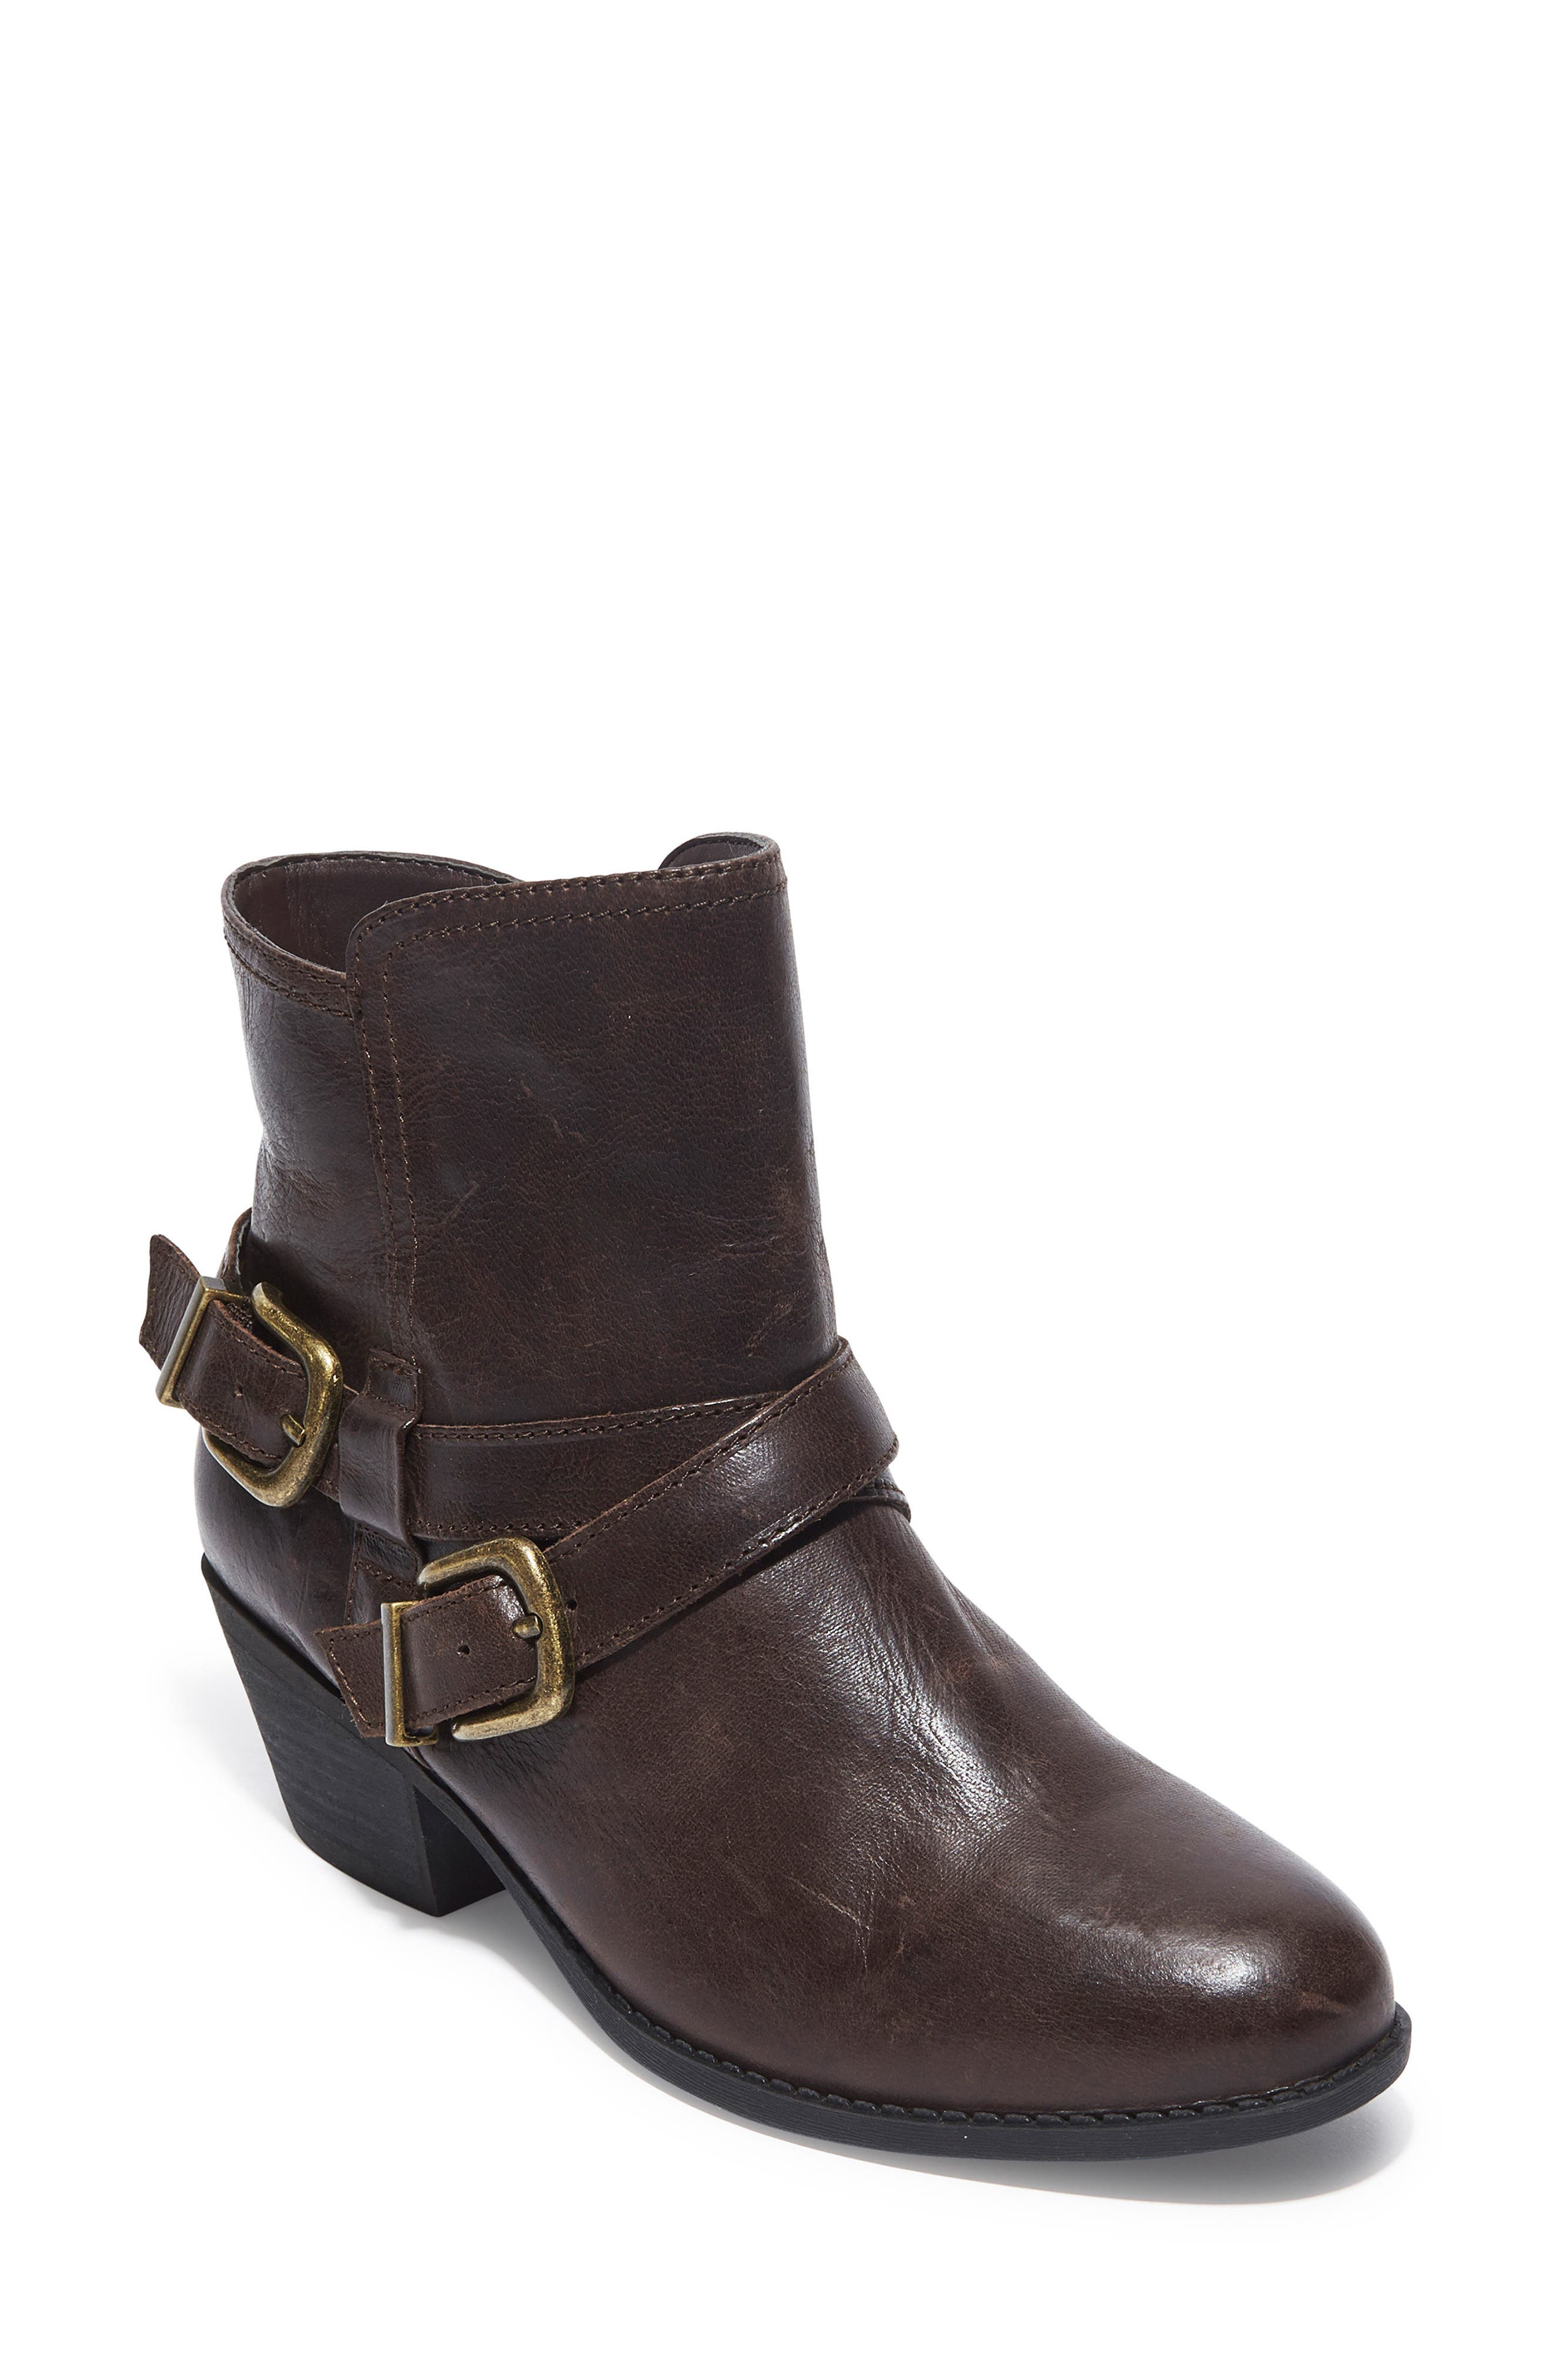 Alternate Image 1 Selected - Me Too Zuri Buckle Boot (Women)